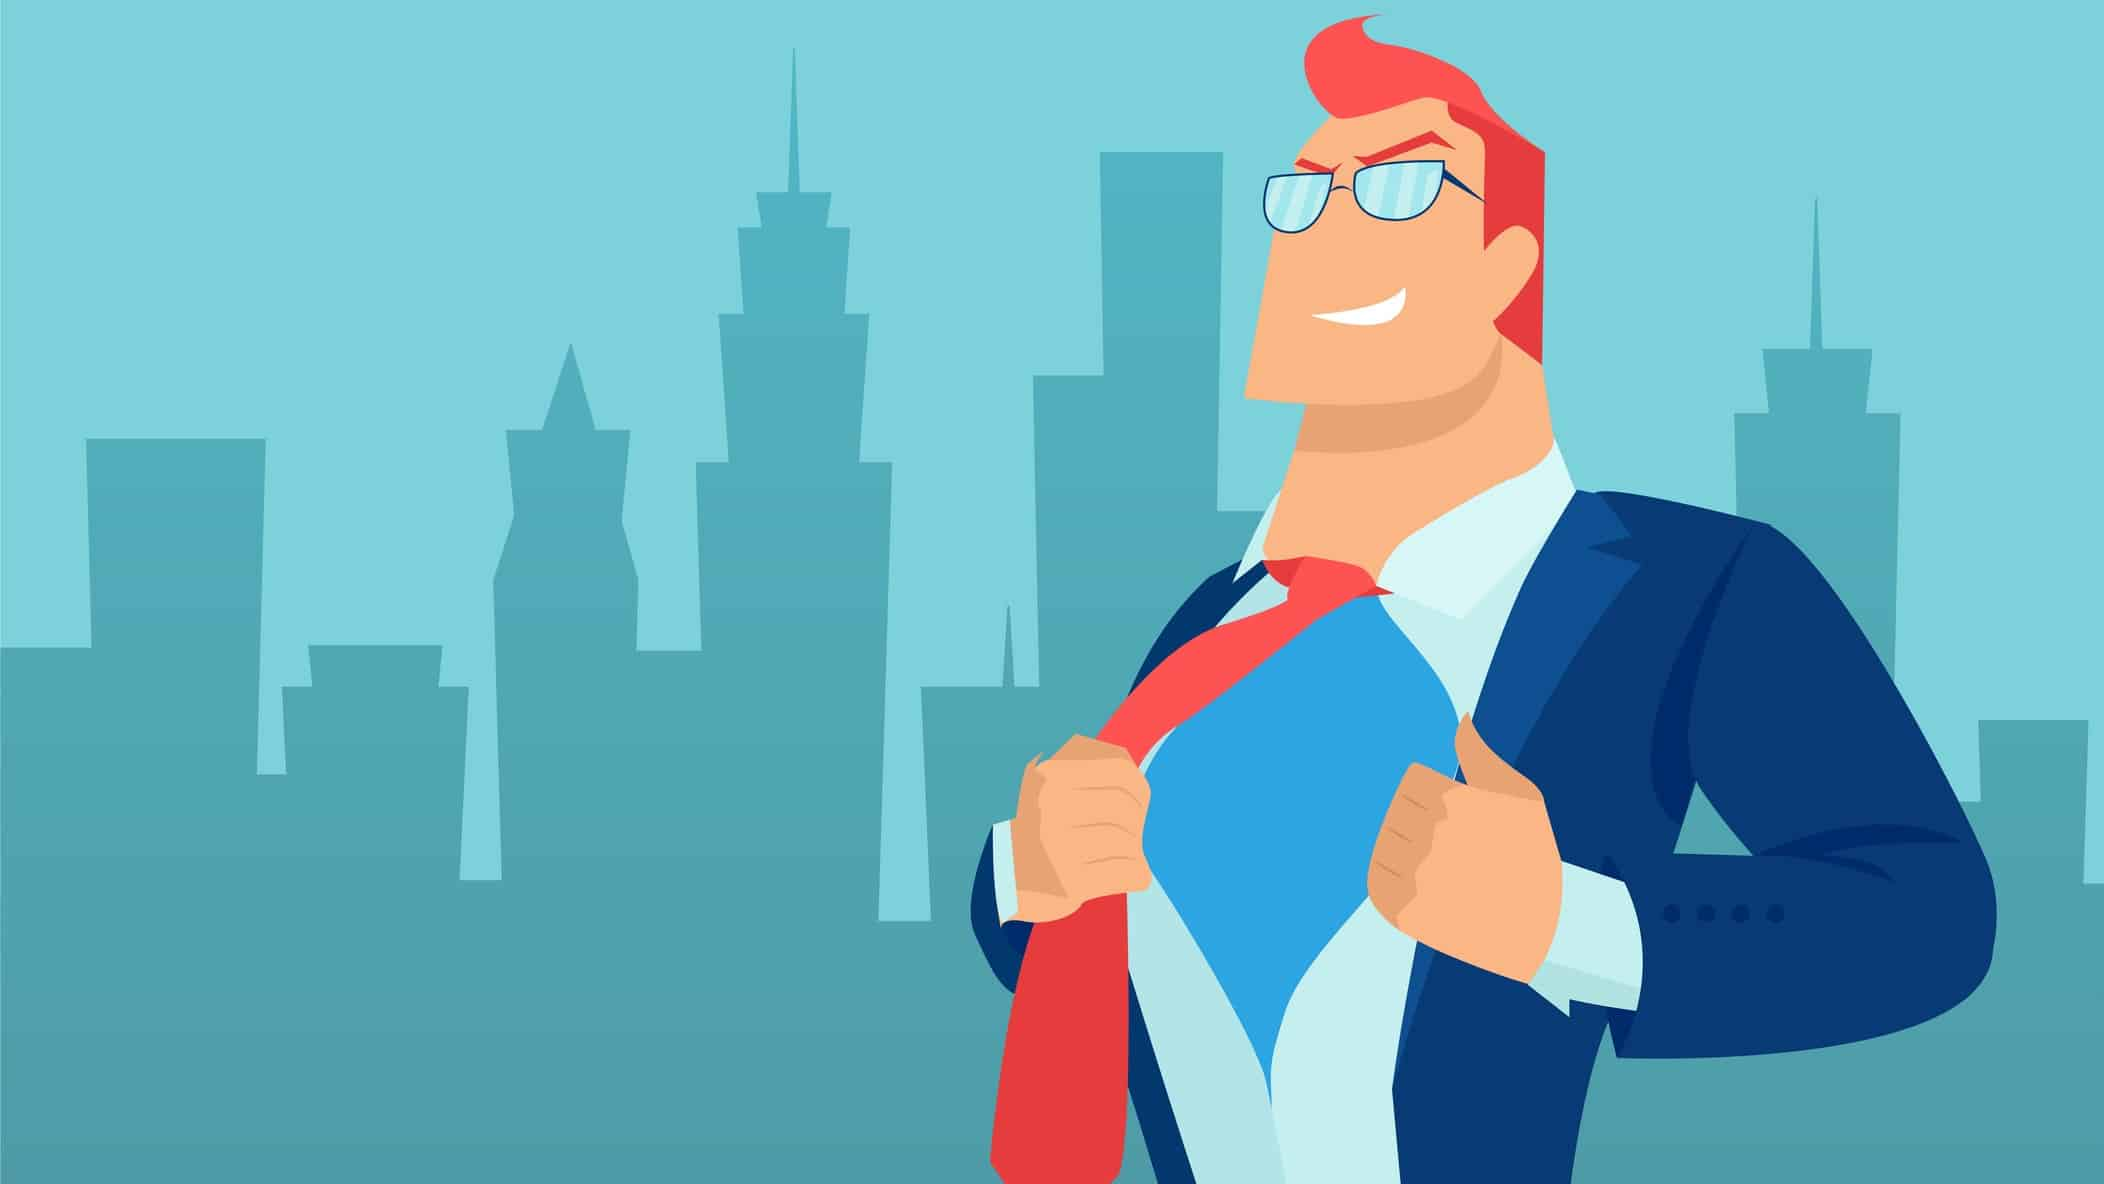 A drawing of a a superhero businessman in fron of a cityscape in silhoutte, indicating a share price earnings super cycle